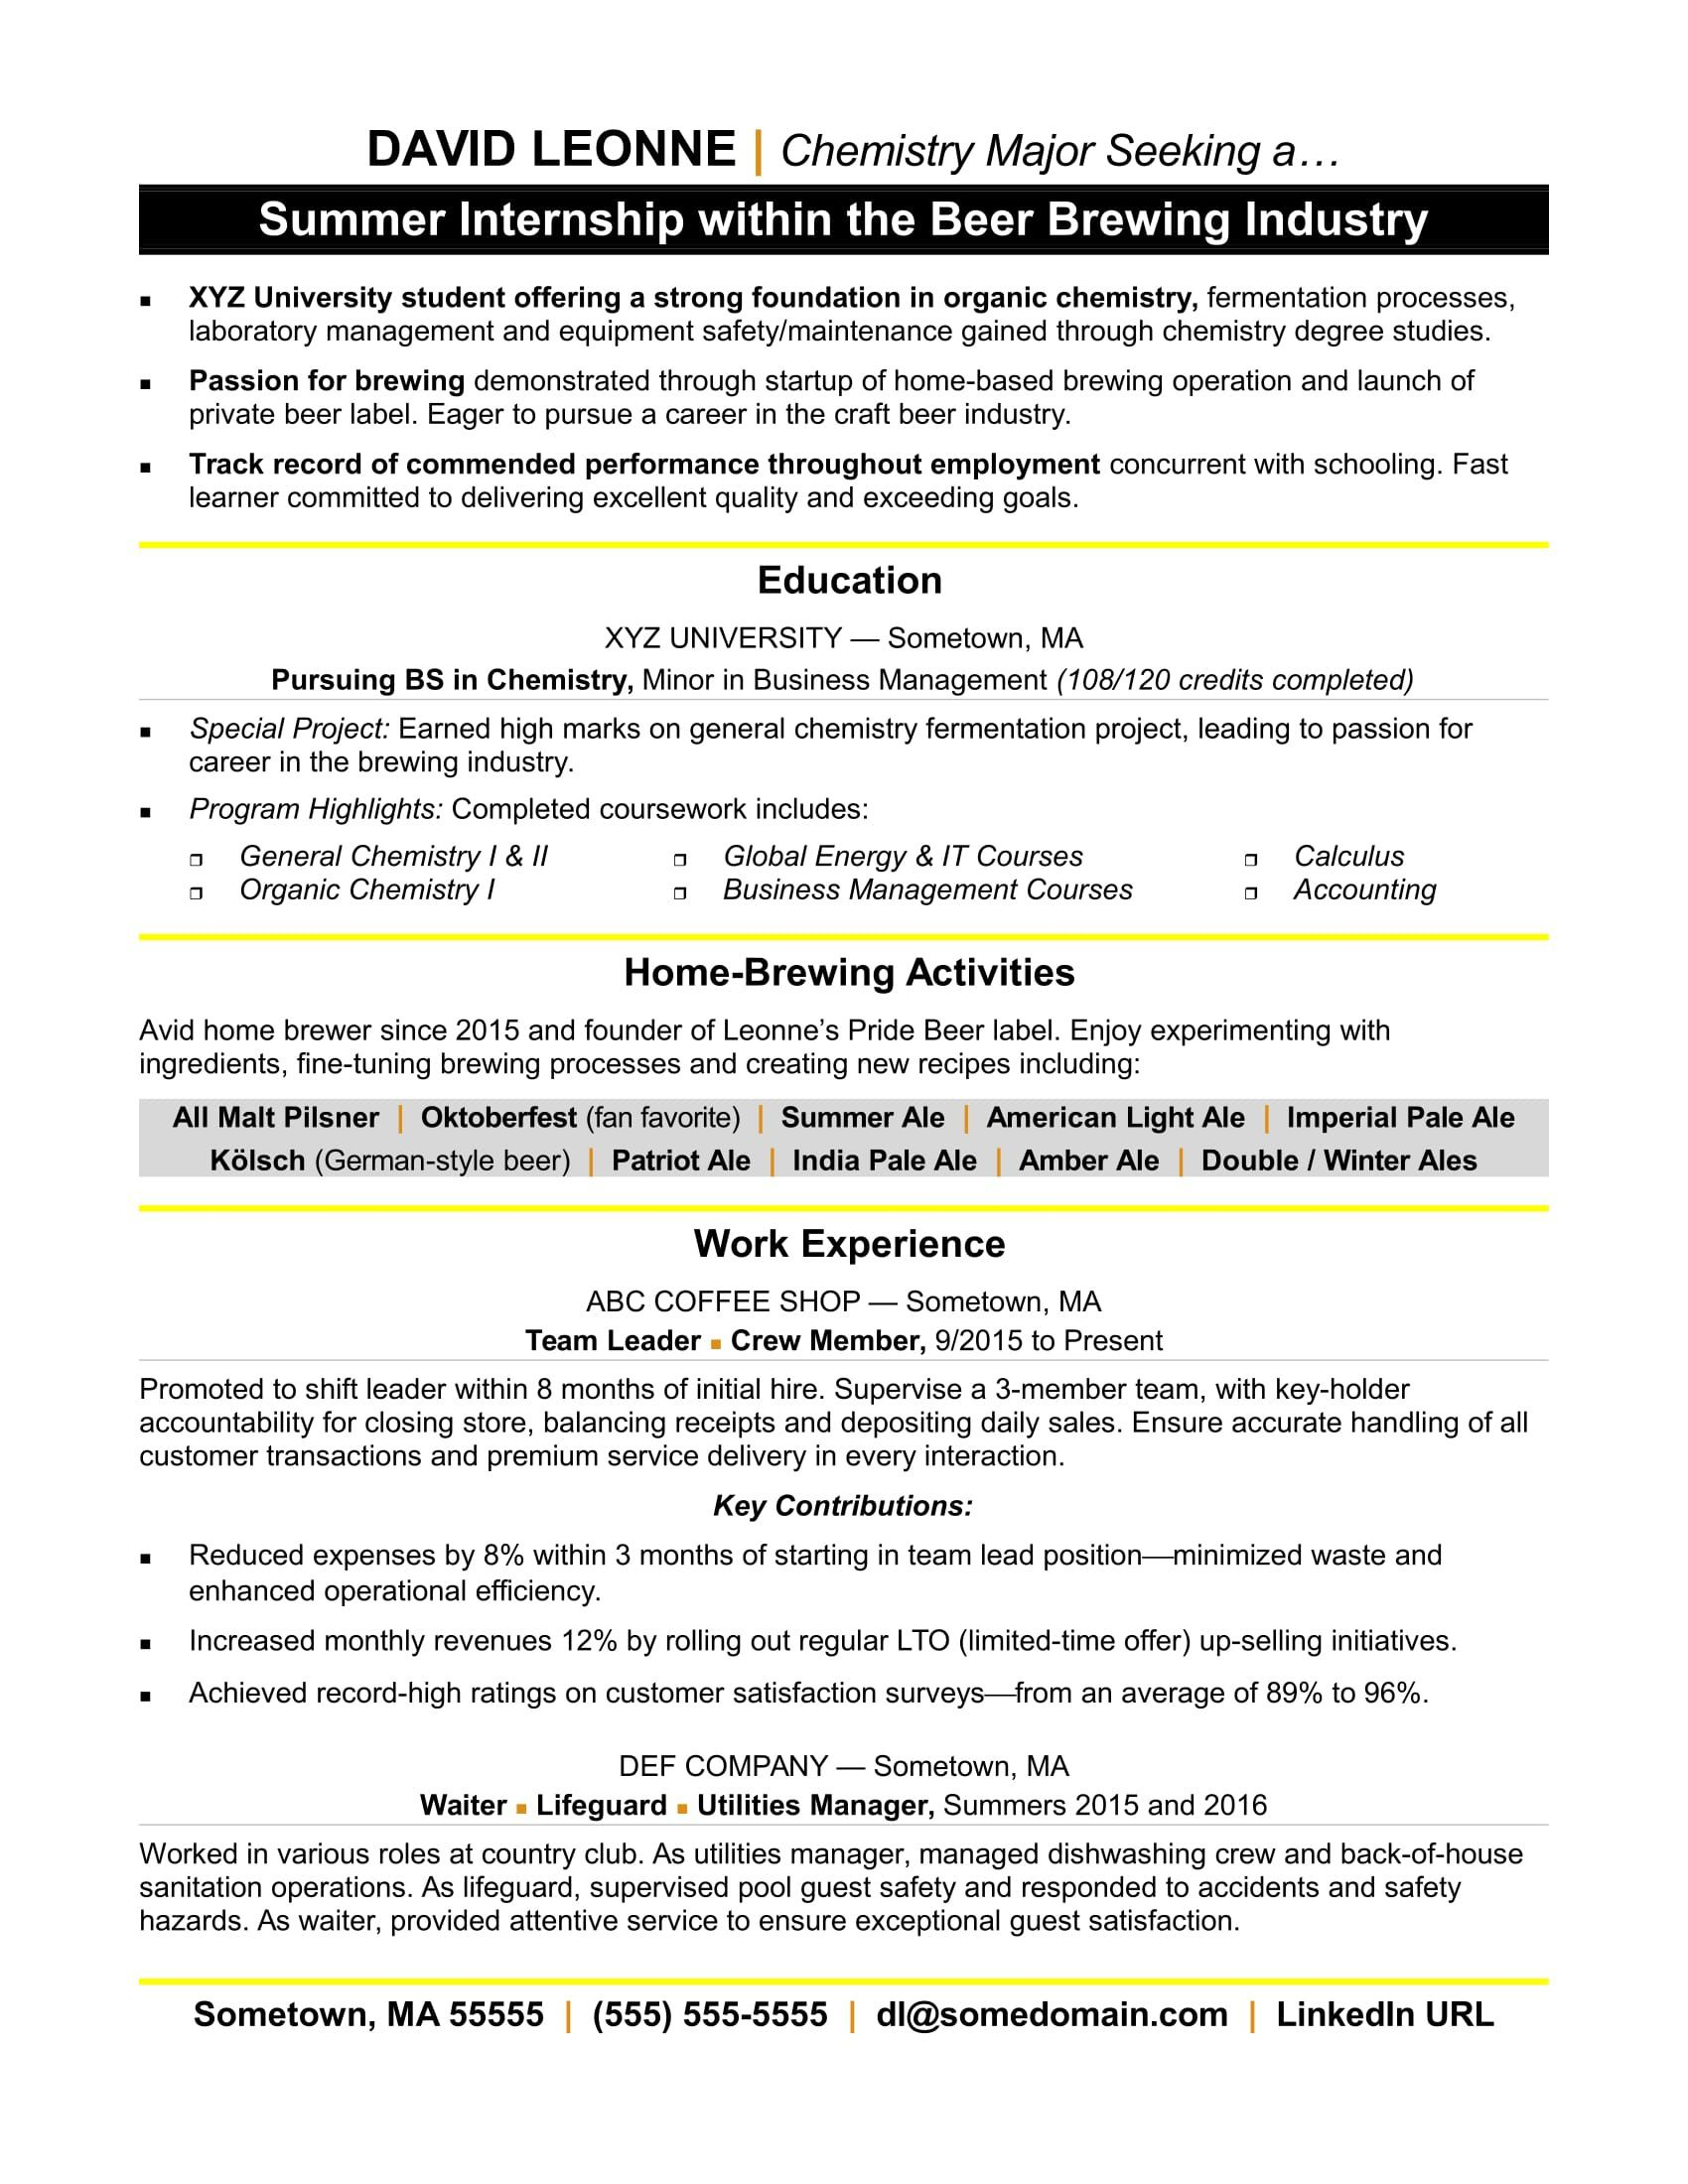 004 Beautiful Resume Template For Intern Picture  Interns Internship In Engineering Law ExampleFull